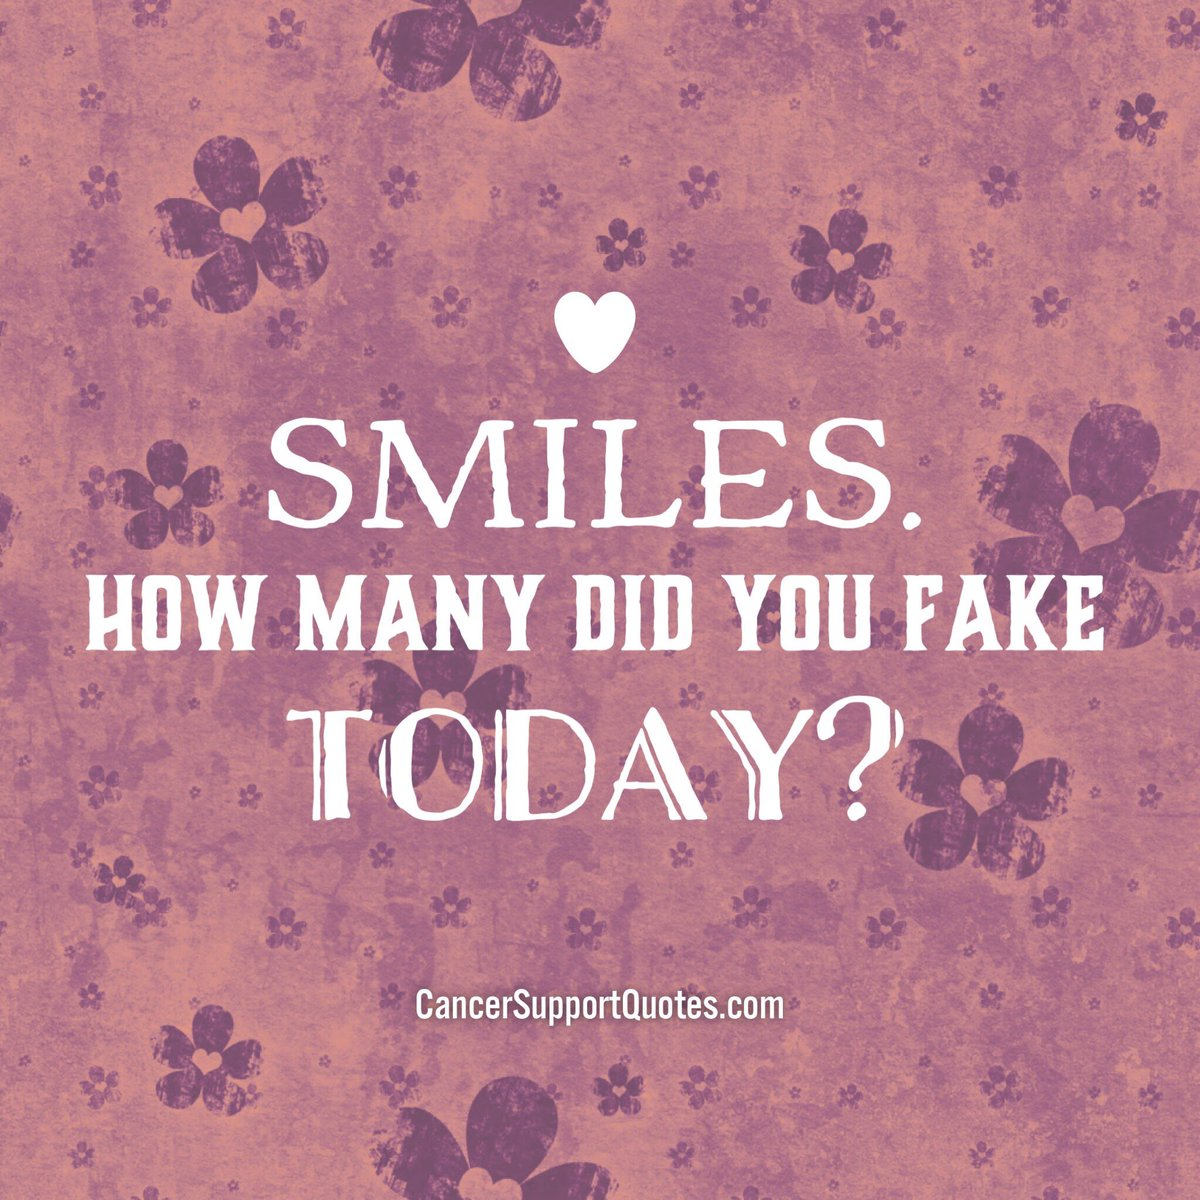 SMILES. How many did you fake today? #cancersupportquotes ...